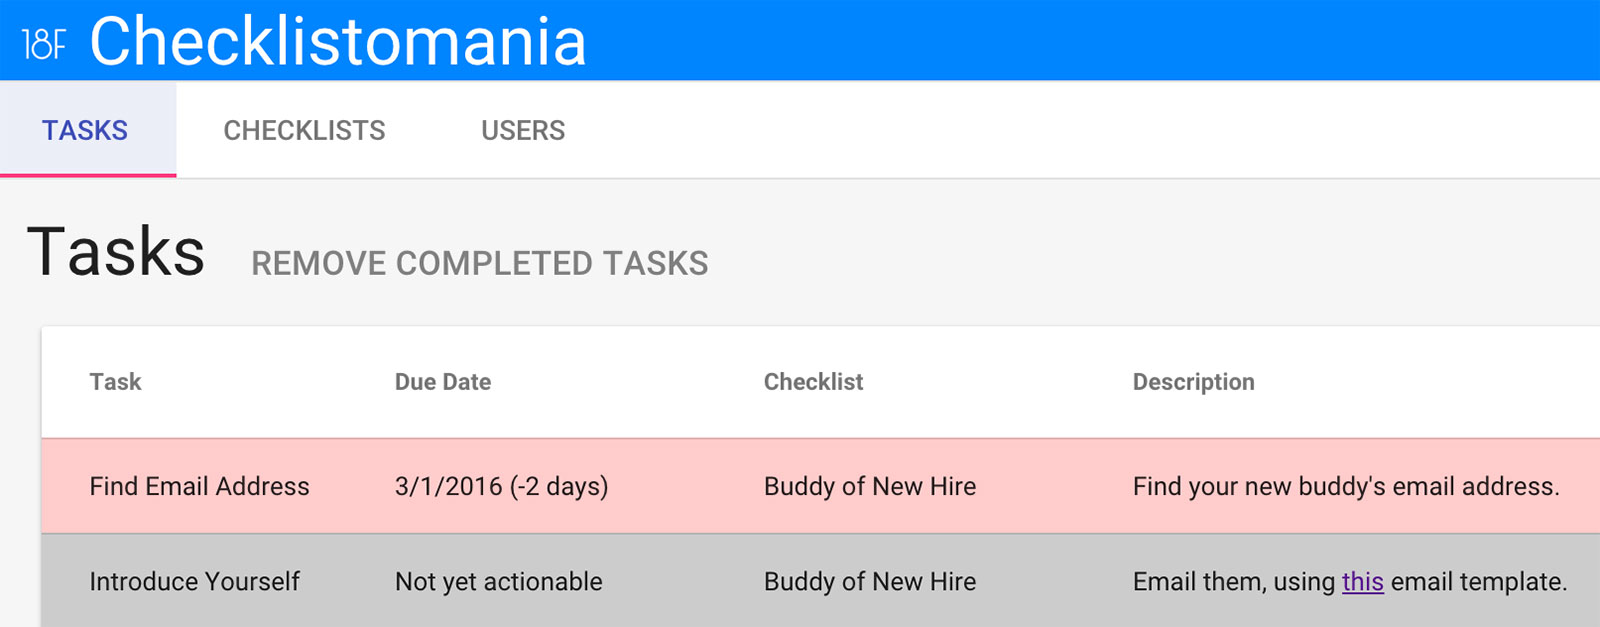 A screenshot of our Checklistomania tool showing two sample tasks